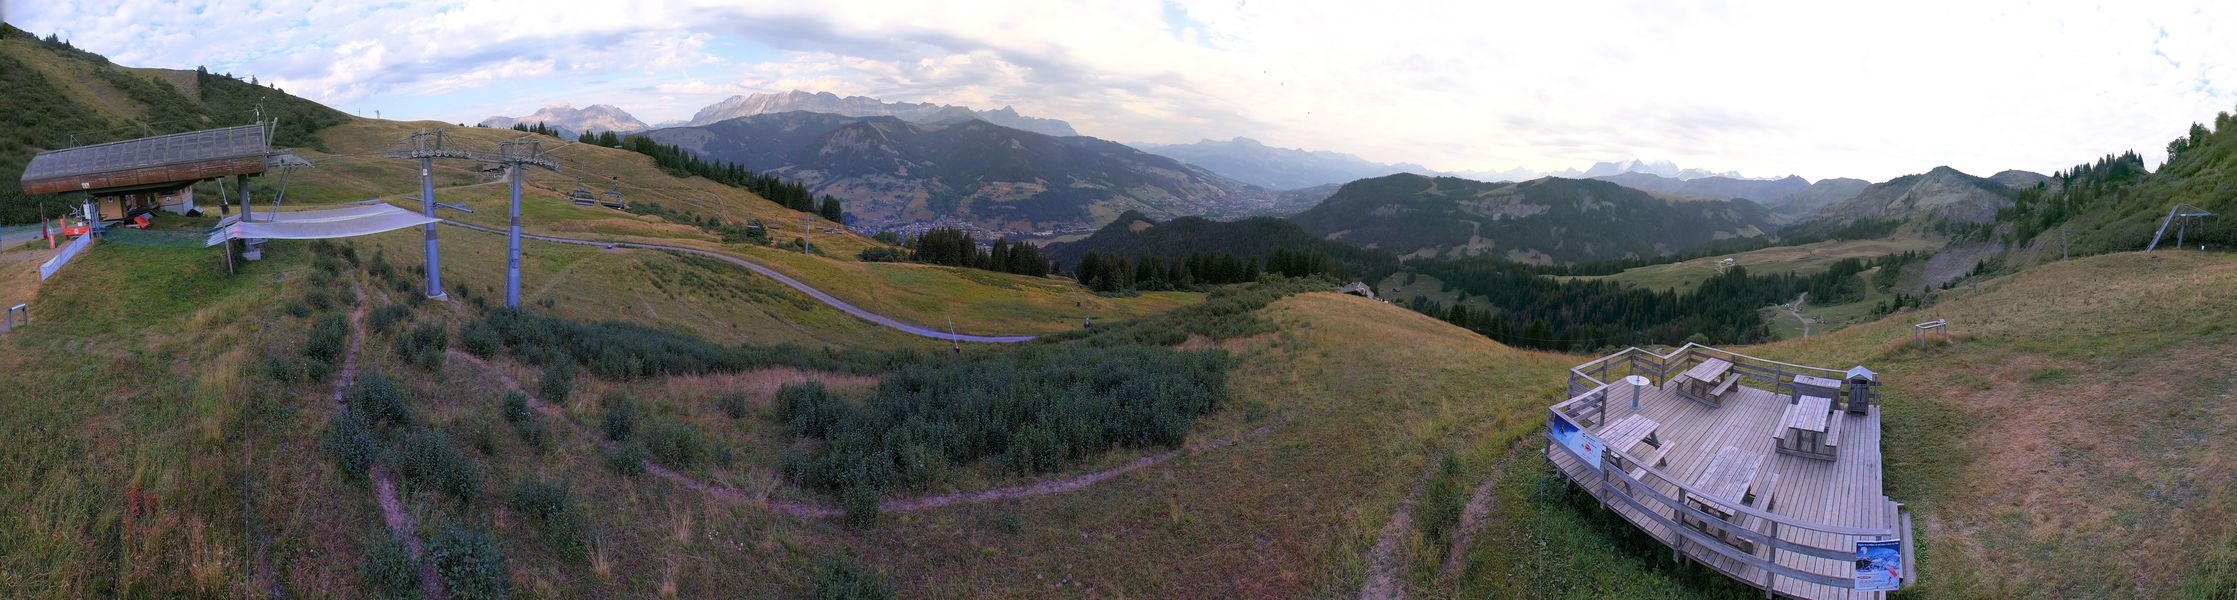 webcam panoramique Praz Sur Arly